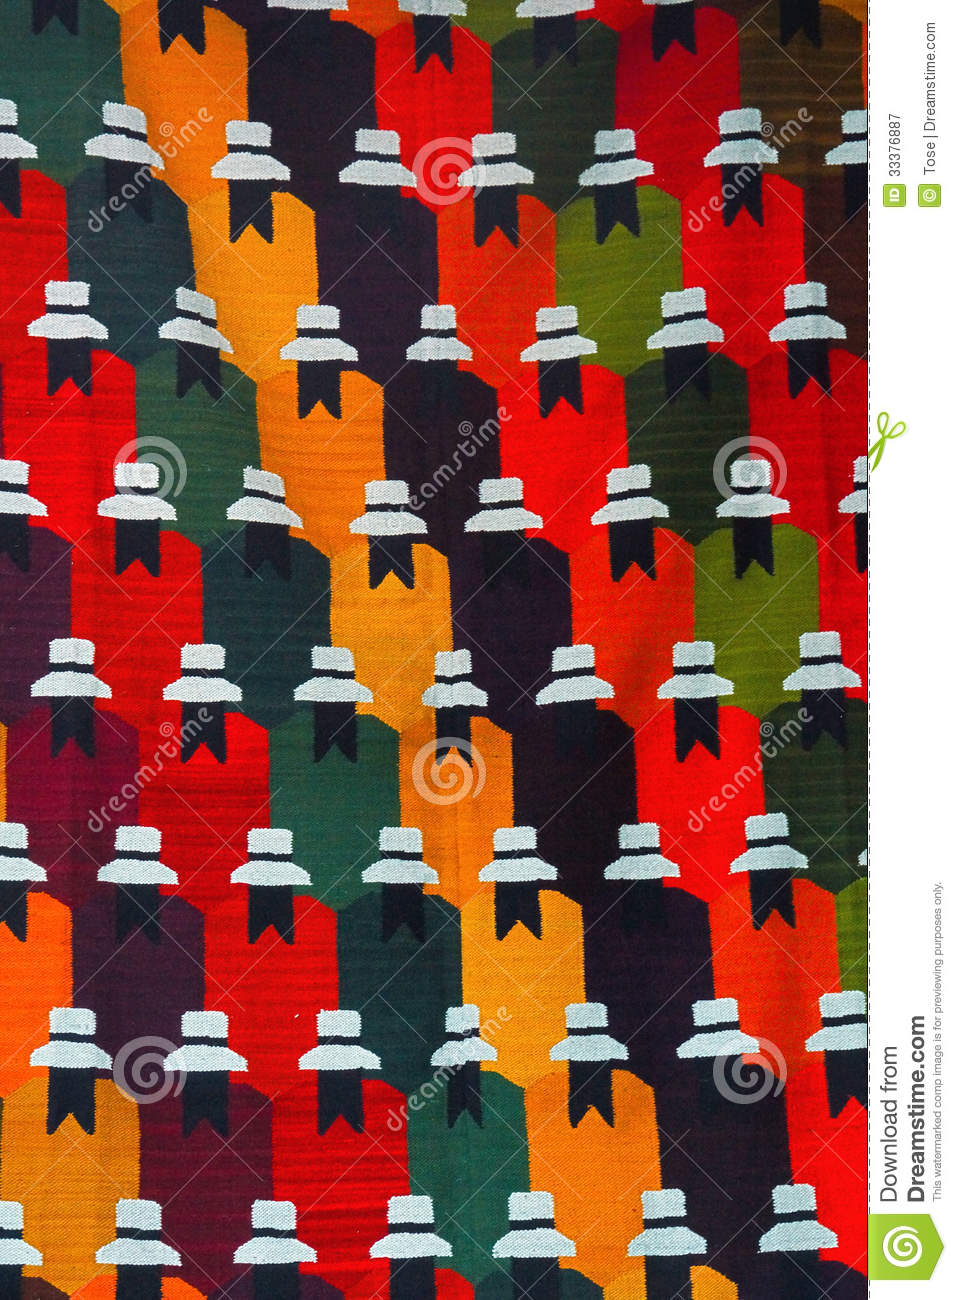 Colorful Peruvian Textiles Royalty Free Stock Photography